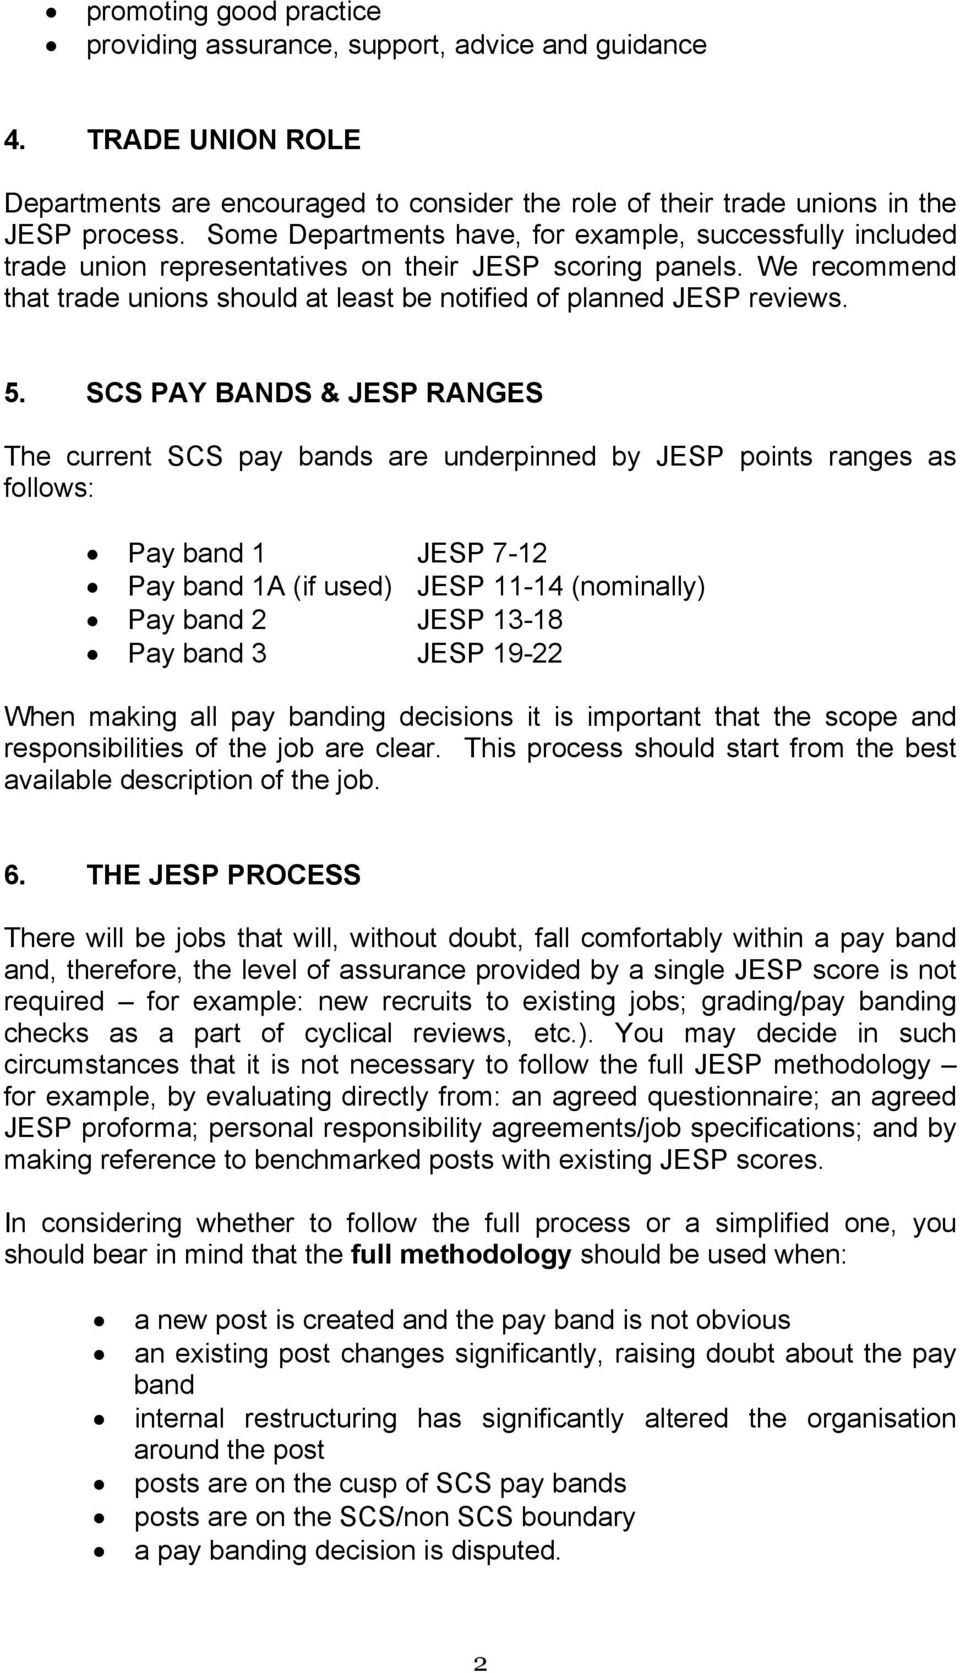 5. SCS PAY BANDS & JESP RANGES The current SCS pay bands are underpinned by JESP points ranges as follows: Pay band 1 JESP 7-12 Pay band 1A (if used) JESP 11-14 (nominally) Pay band 2 JESP 13-18 Pay